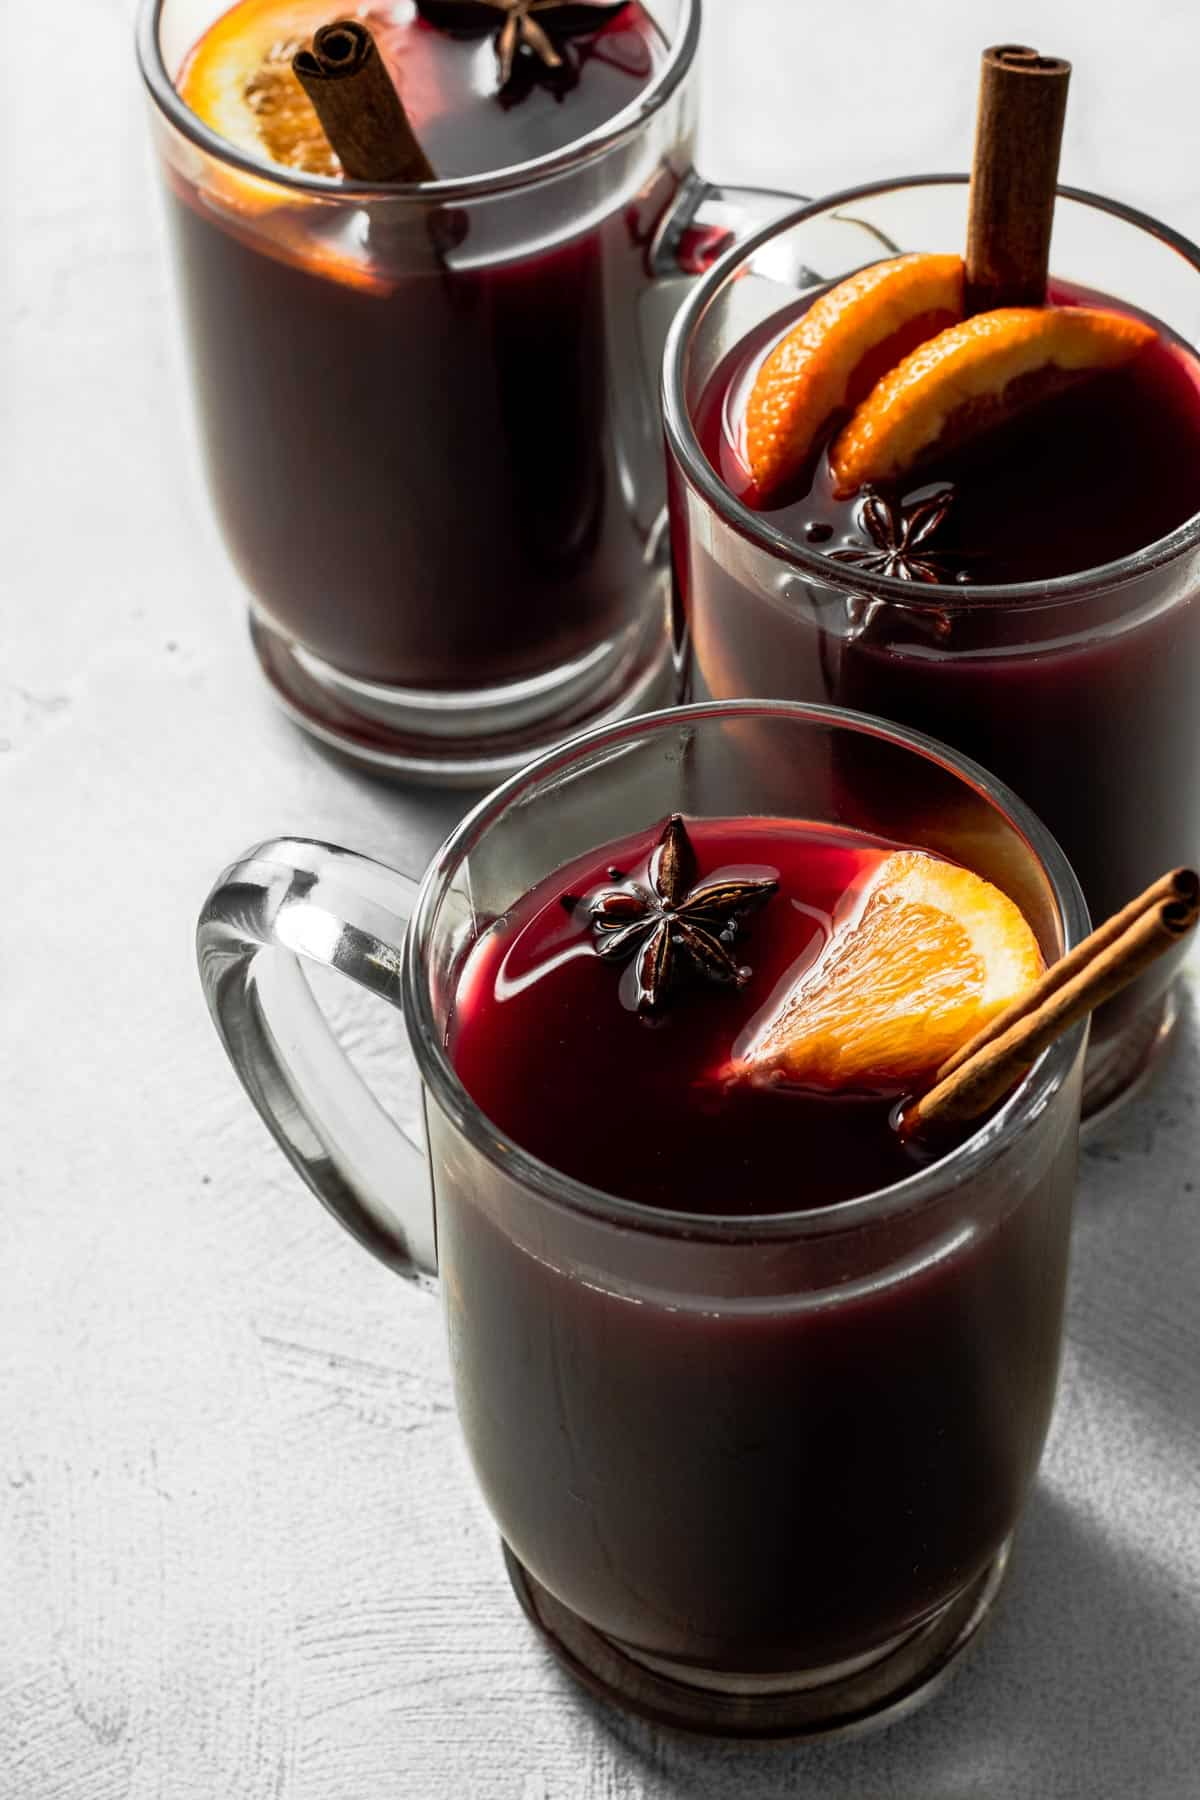 3 glass mugs full of non-alcoholic mulled wine on gray background.